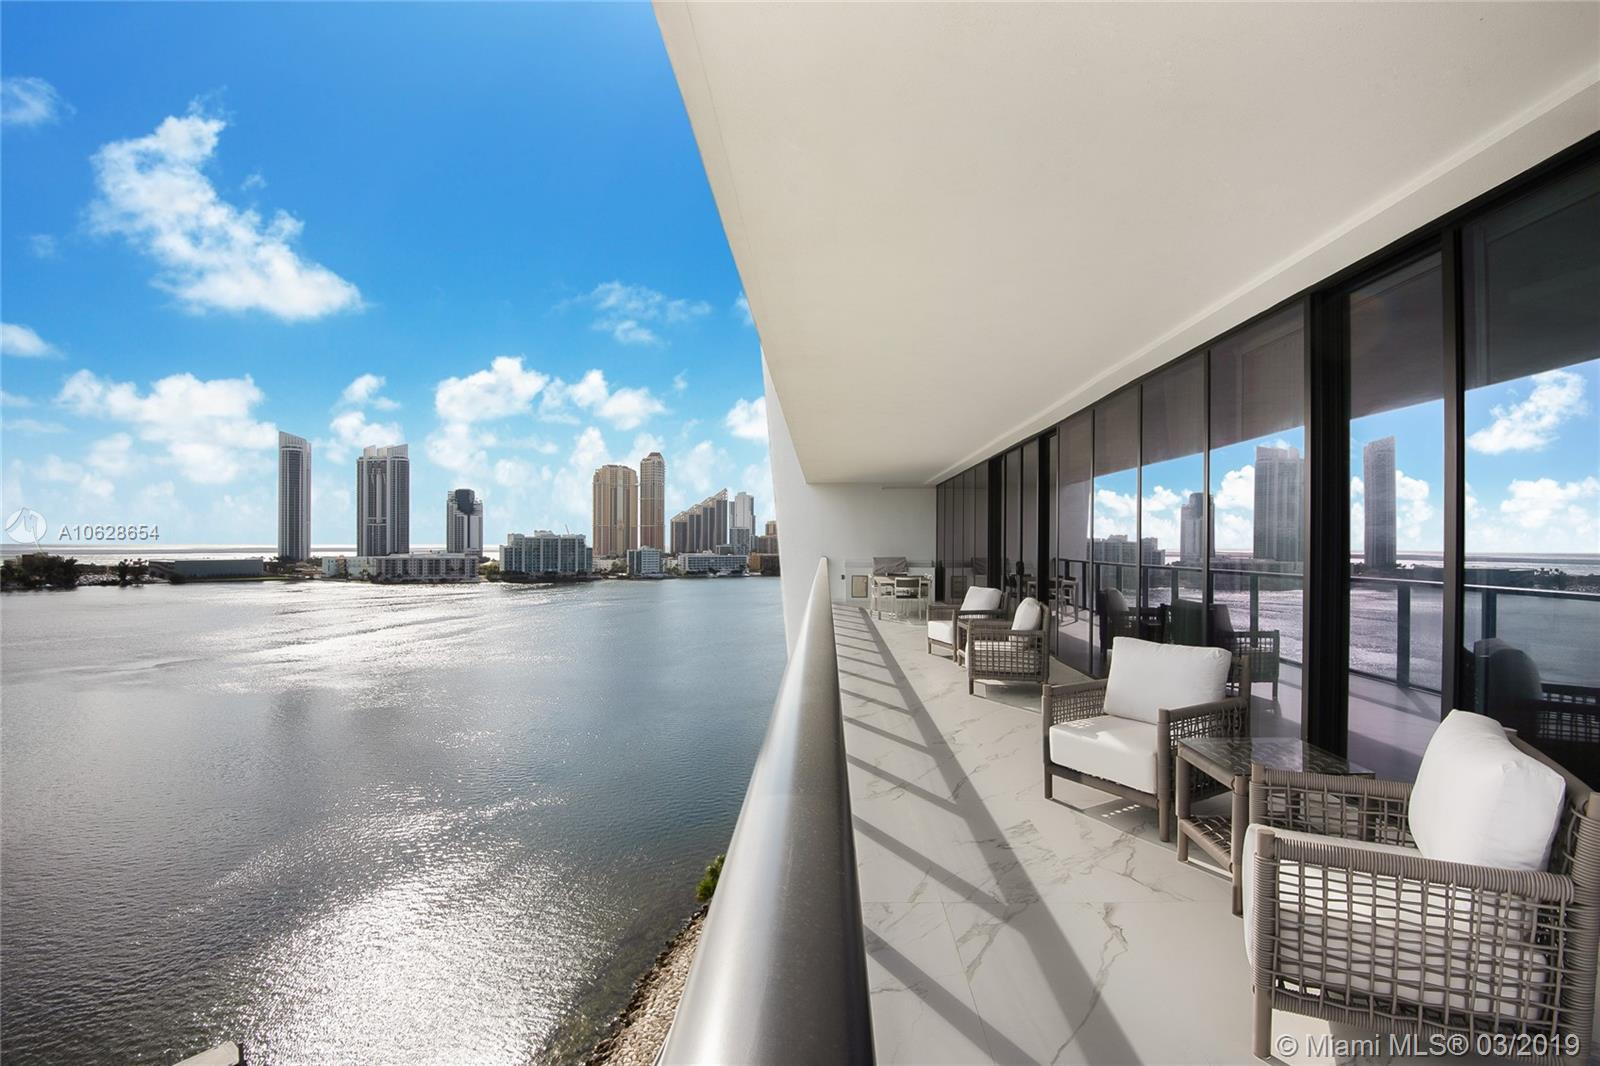 """UNIT DRASTICALLY REDUCED. OWNER NEEDS TO SELL. JUST BRING YOUR TOOTHBRUSH. BEST 4 BEDROOM IN THE BUILDING. SOUGHT AFTER NORTH CORNER UNIT, FINISHED AND FURNISHED BY WORLD RENOWN """"STEVEN G INTERIORS"""". PRIVATE ELEVATOR FOYER.FLOOR TO CEILING WINDOWS IN ALL DIRECTIONS WITH AMAZING VIEWS. AMENITIES INCLUDE PRIVATE GATEHOUSE ENTRY, FULL TIME CONCIERGE, GYM/SPA, MARINA, PIER, 2 POOLS, RESTAURANT, WINE CELLAR, CIGAR ROOM, SOCIAL ROOMS, TEENAGE ROOMS, AND MORE. 4 BEDROOMS AND 5 1/2 BATHROOMS. MAID QUARTERS WITH COMPLETE BATHROOM. SUMMER KITCHEN IN TERRACE."""